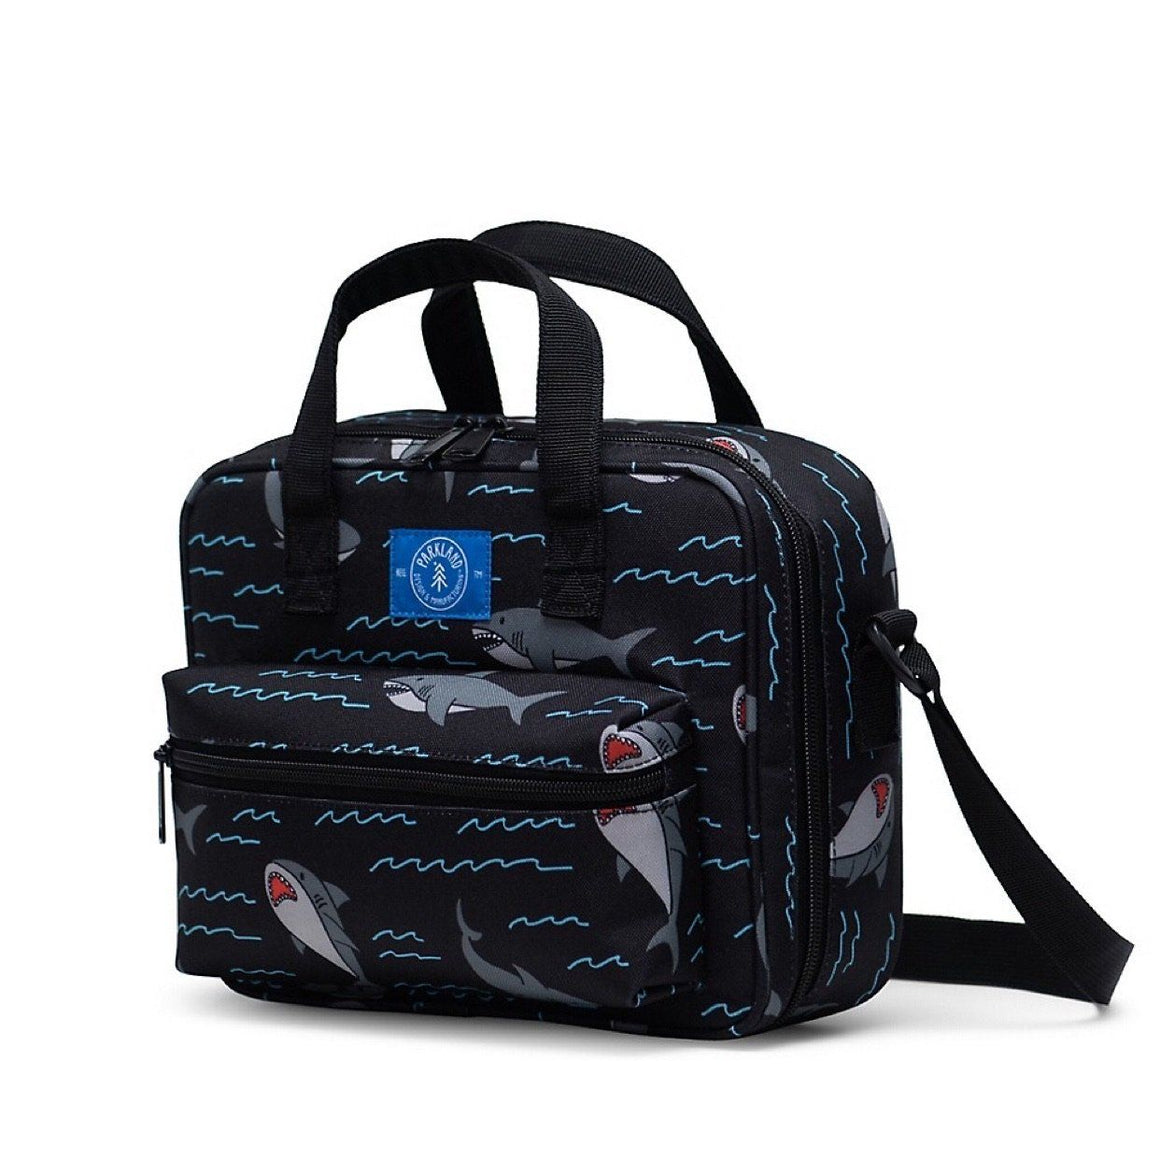 Parkland - Tag Kids Lunch Box - Shark Lunch Box Parkland